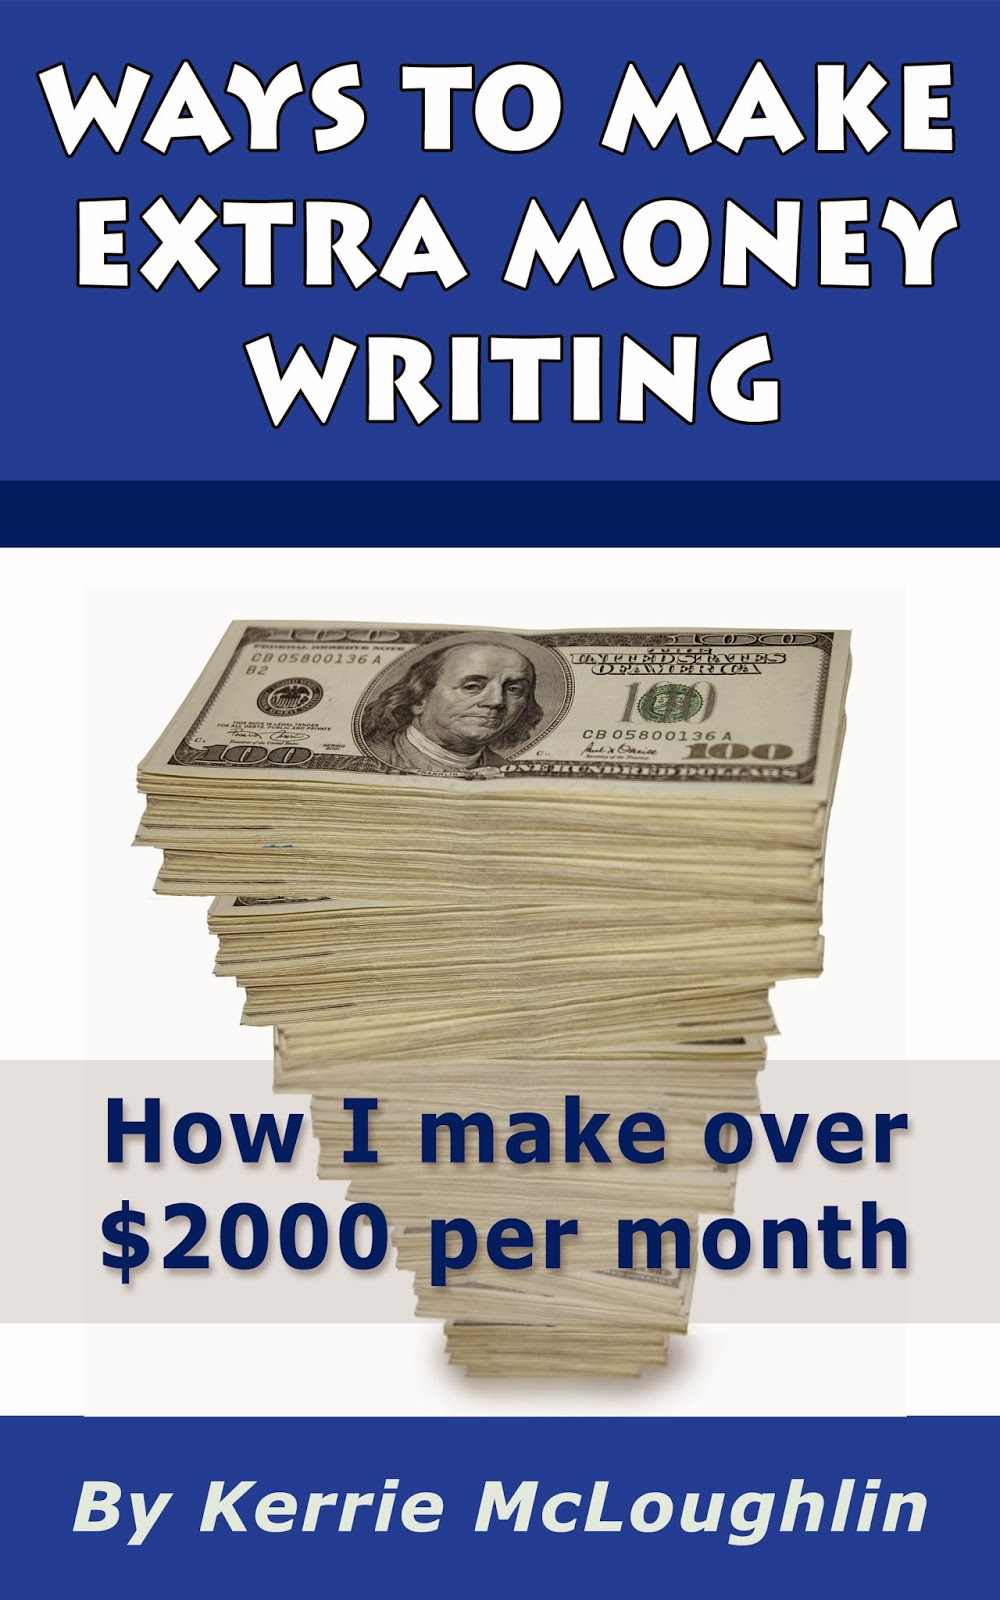 Make Money Writing For The Web - What Makes Writing for the Web Different From Regular Types